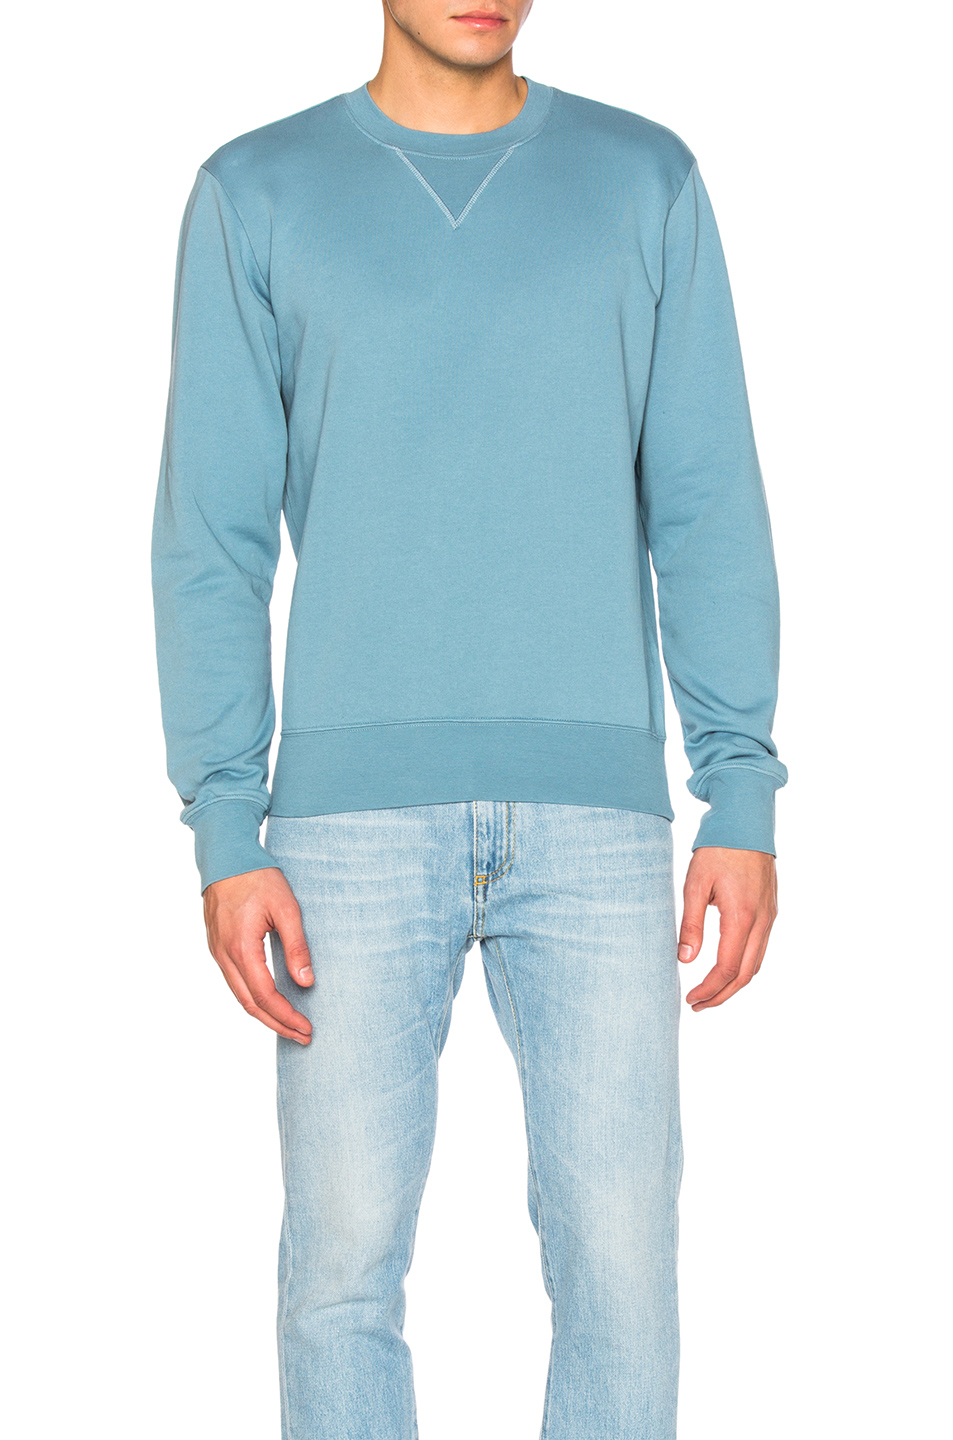 Maison Margiela Cotton Sweatshirt in Blue